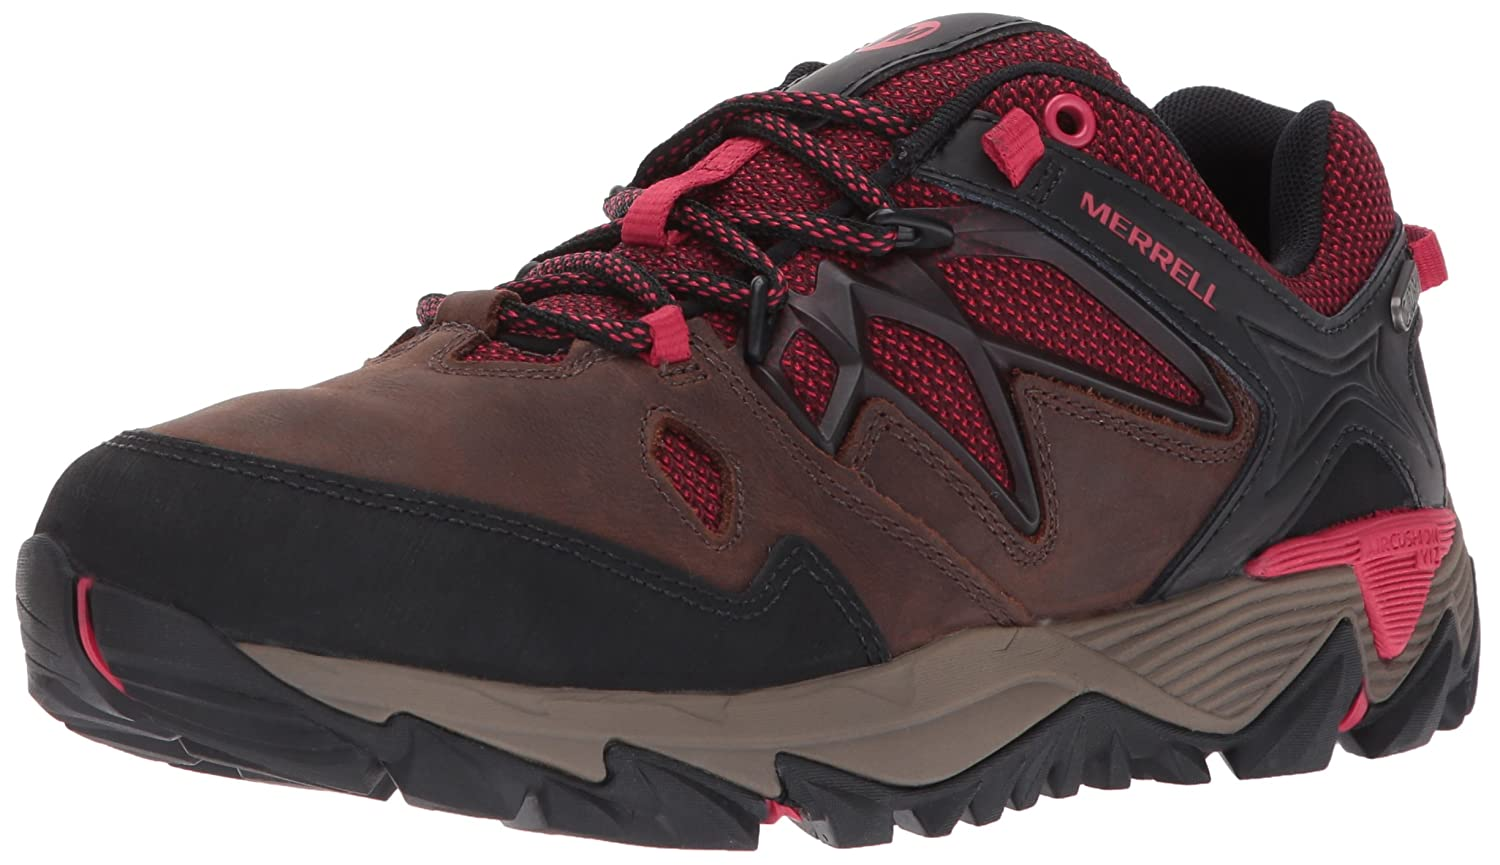 Merrell Women's All Out Blaze 2 Waterproof Hiking Shoe B01N9HGKLB 8.5 B(M) US|Cinnamon